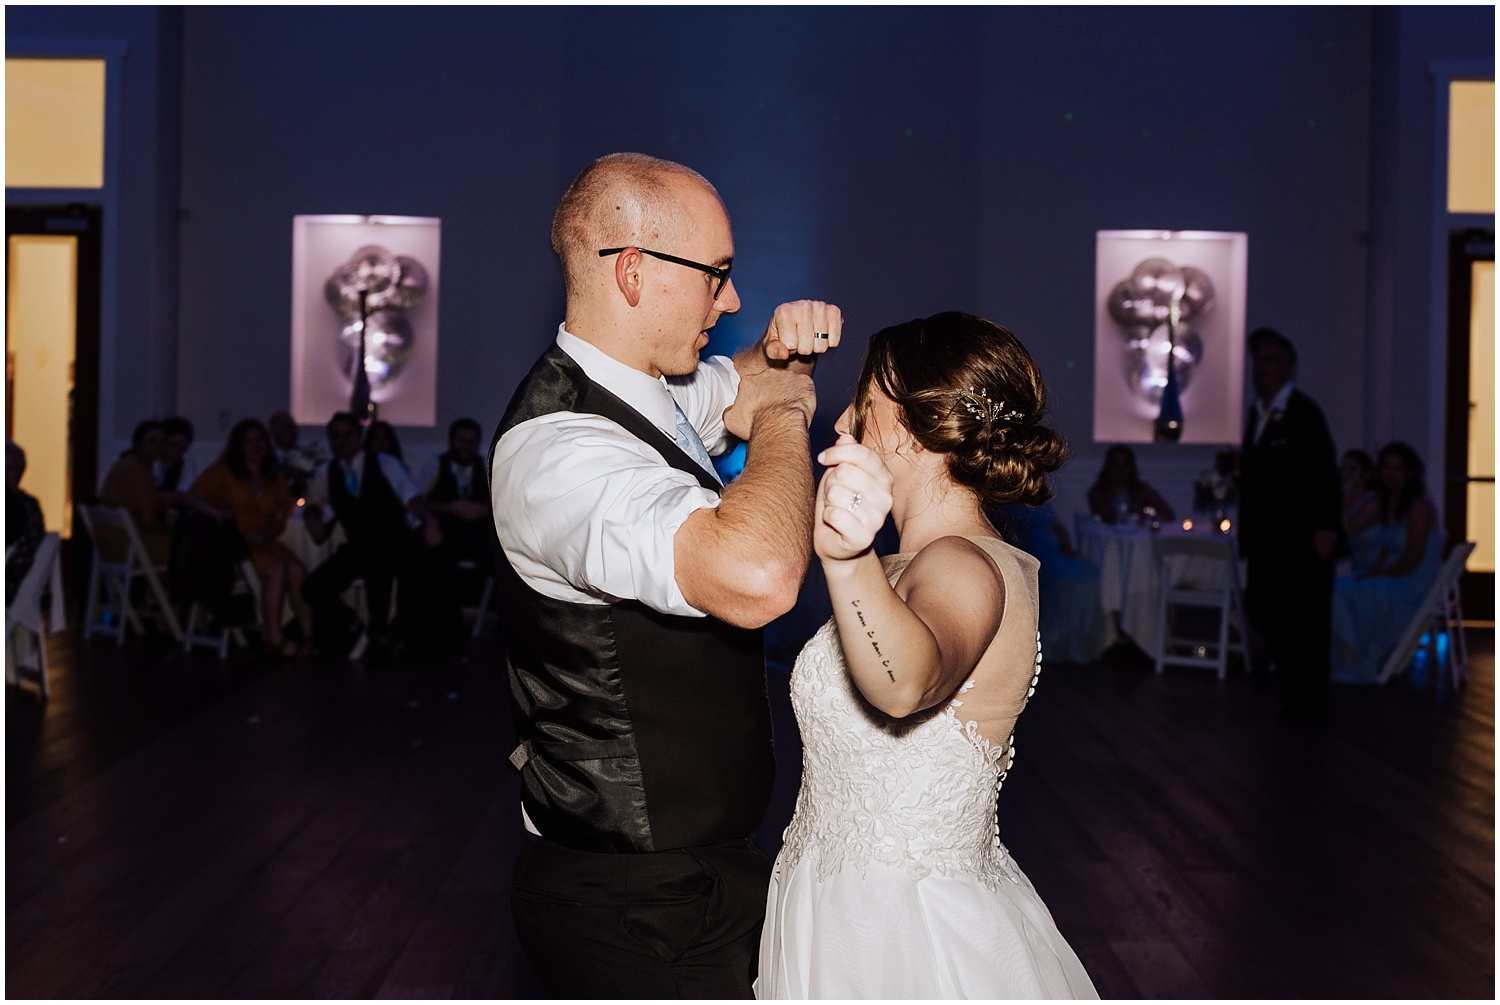 Bride and Groom Dance off During Reception